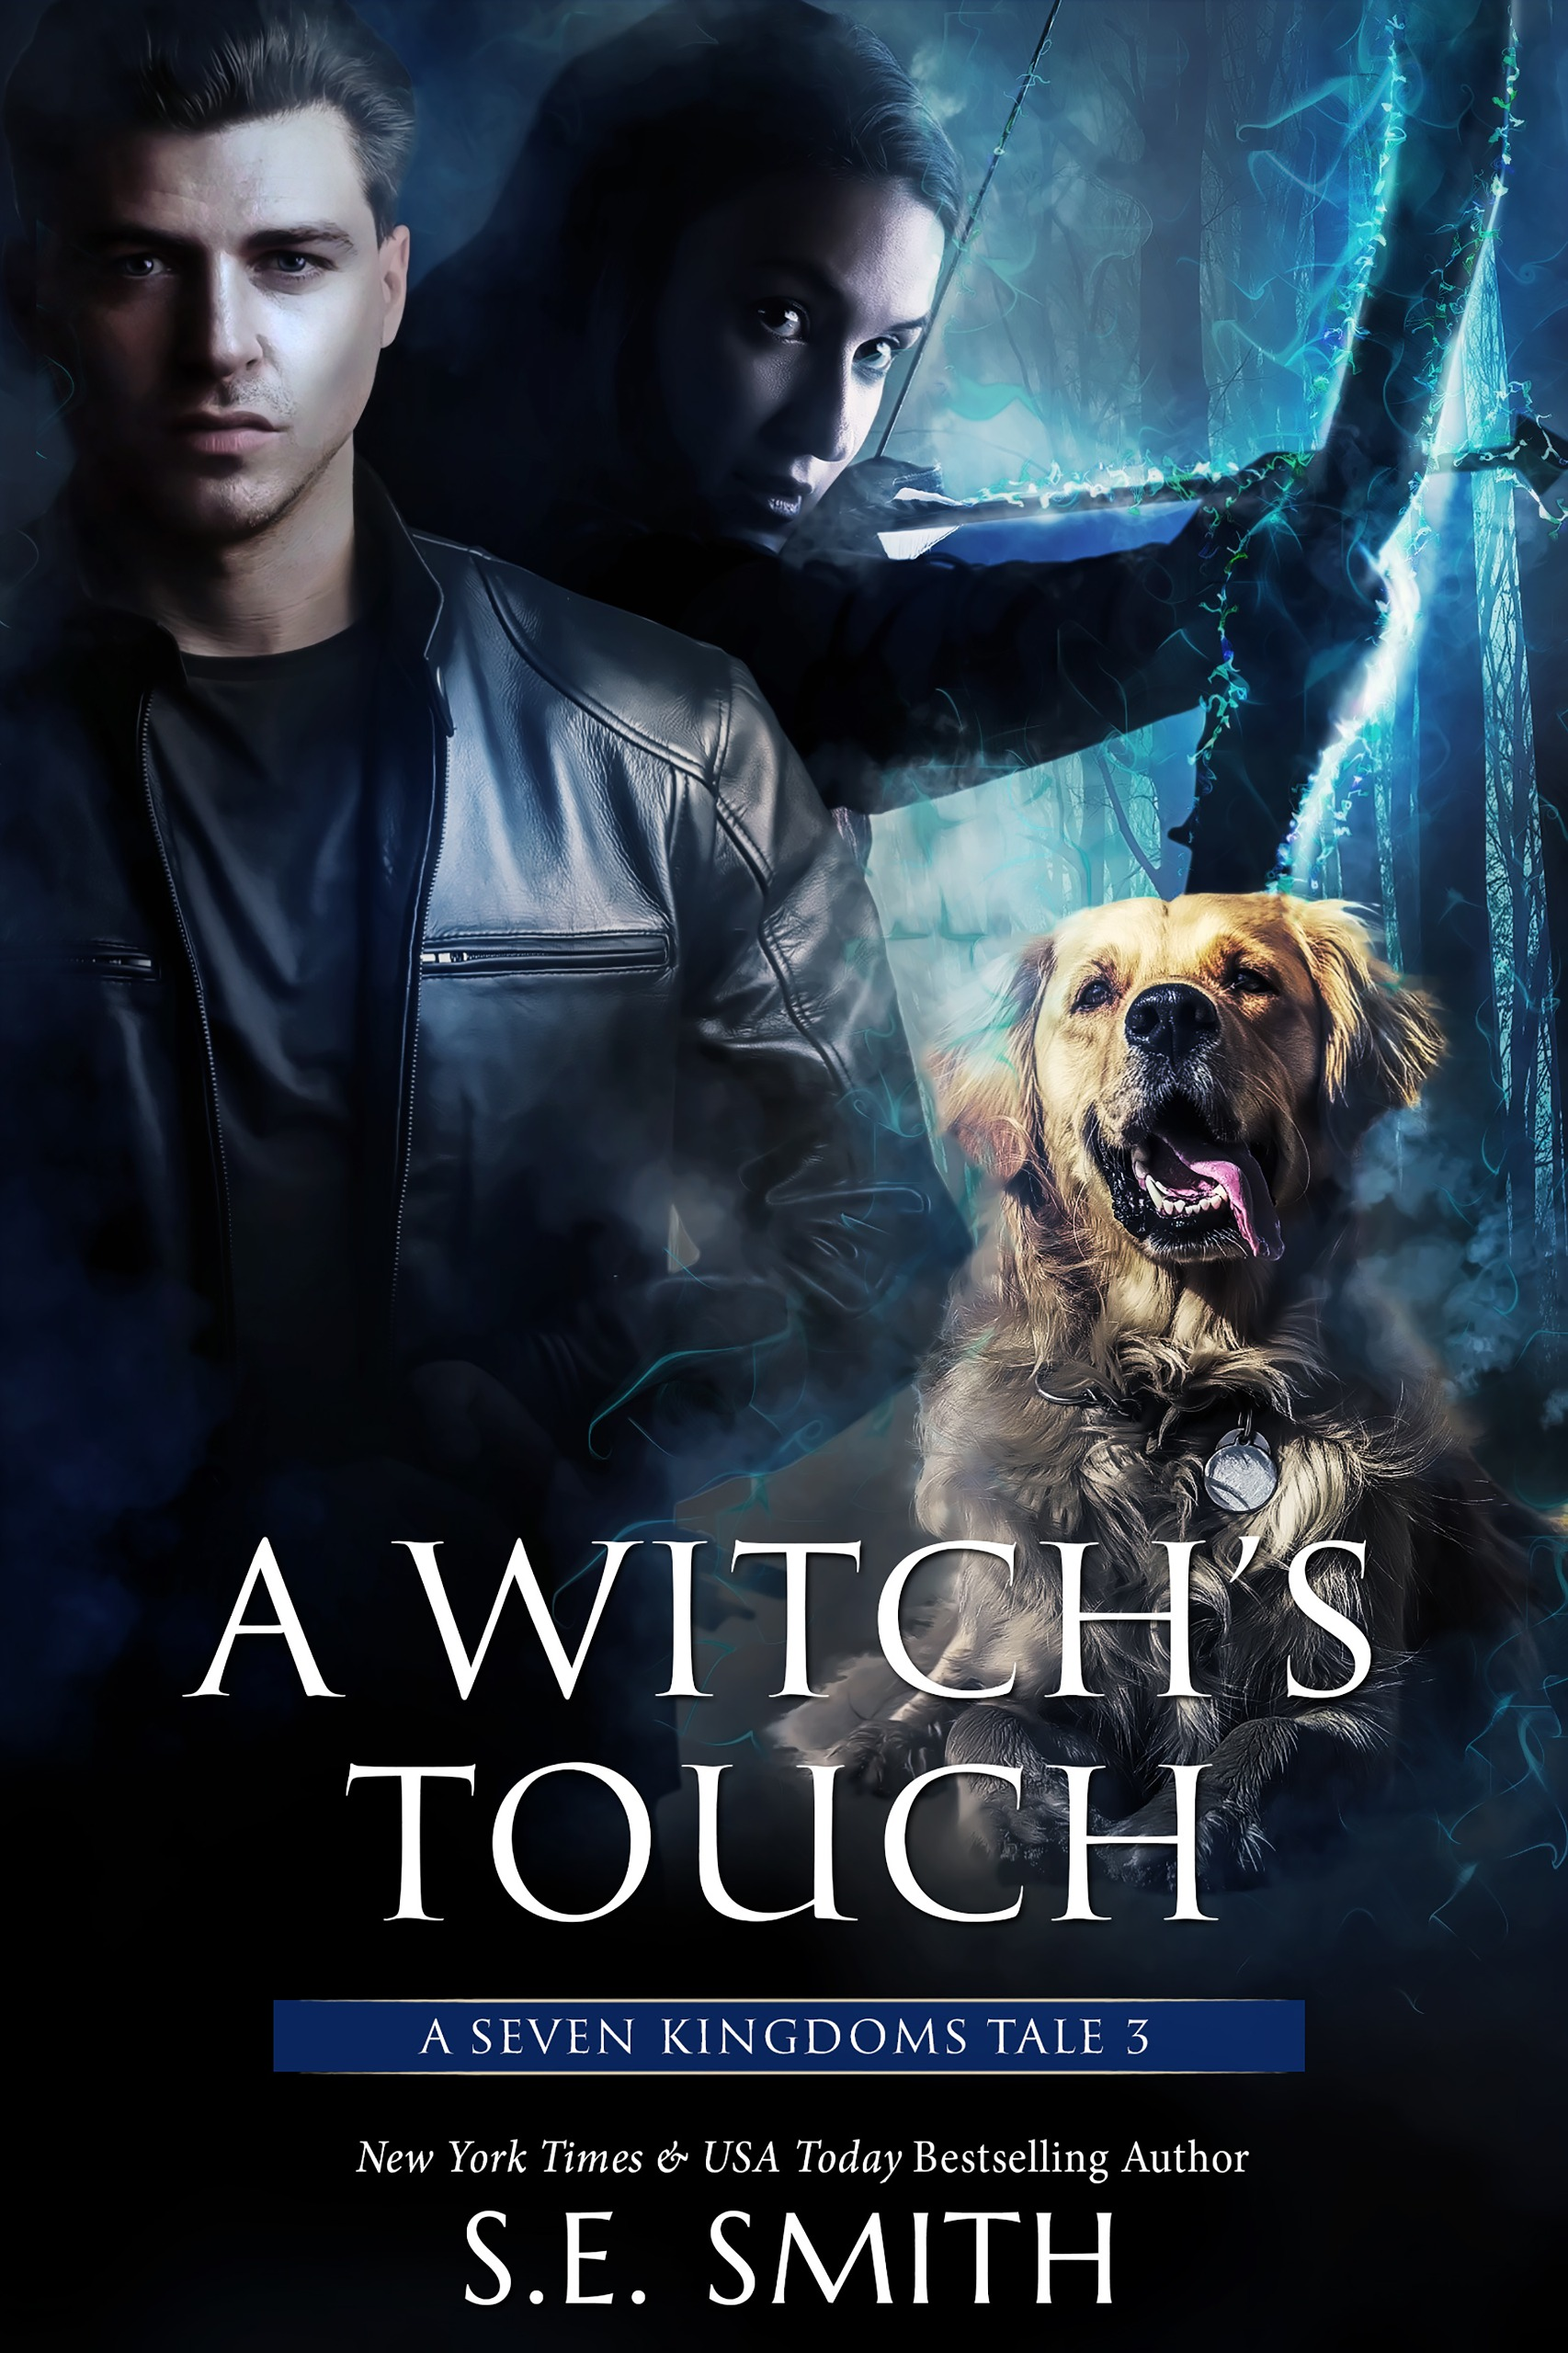 A Witch's Touch: A Seven Kingdoms Tale 3 (paperback)